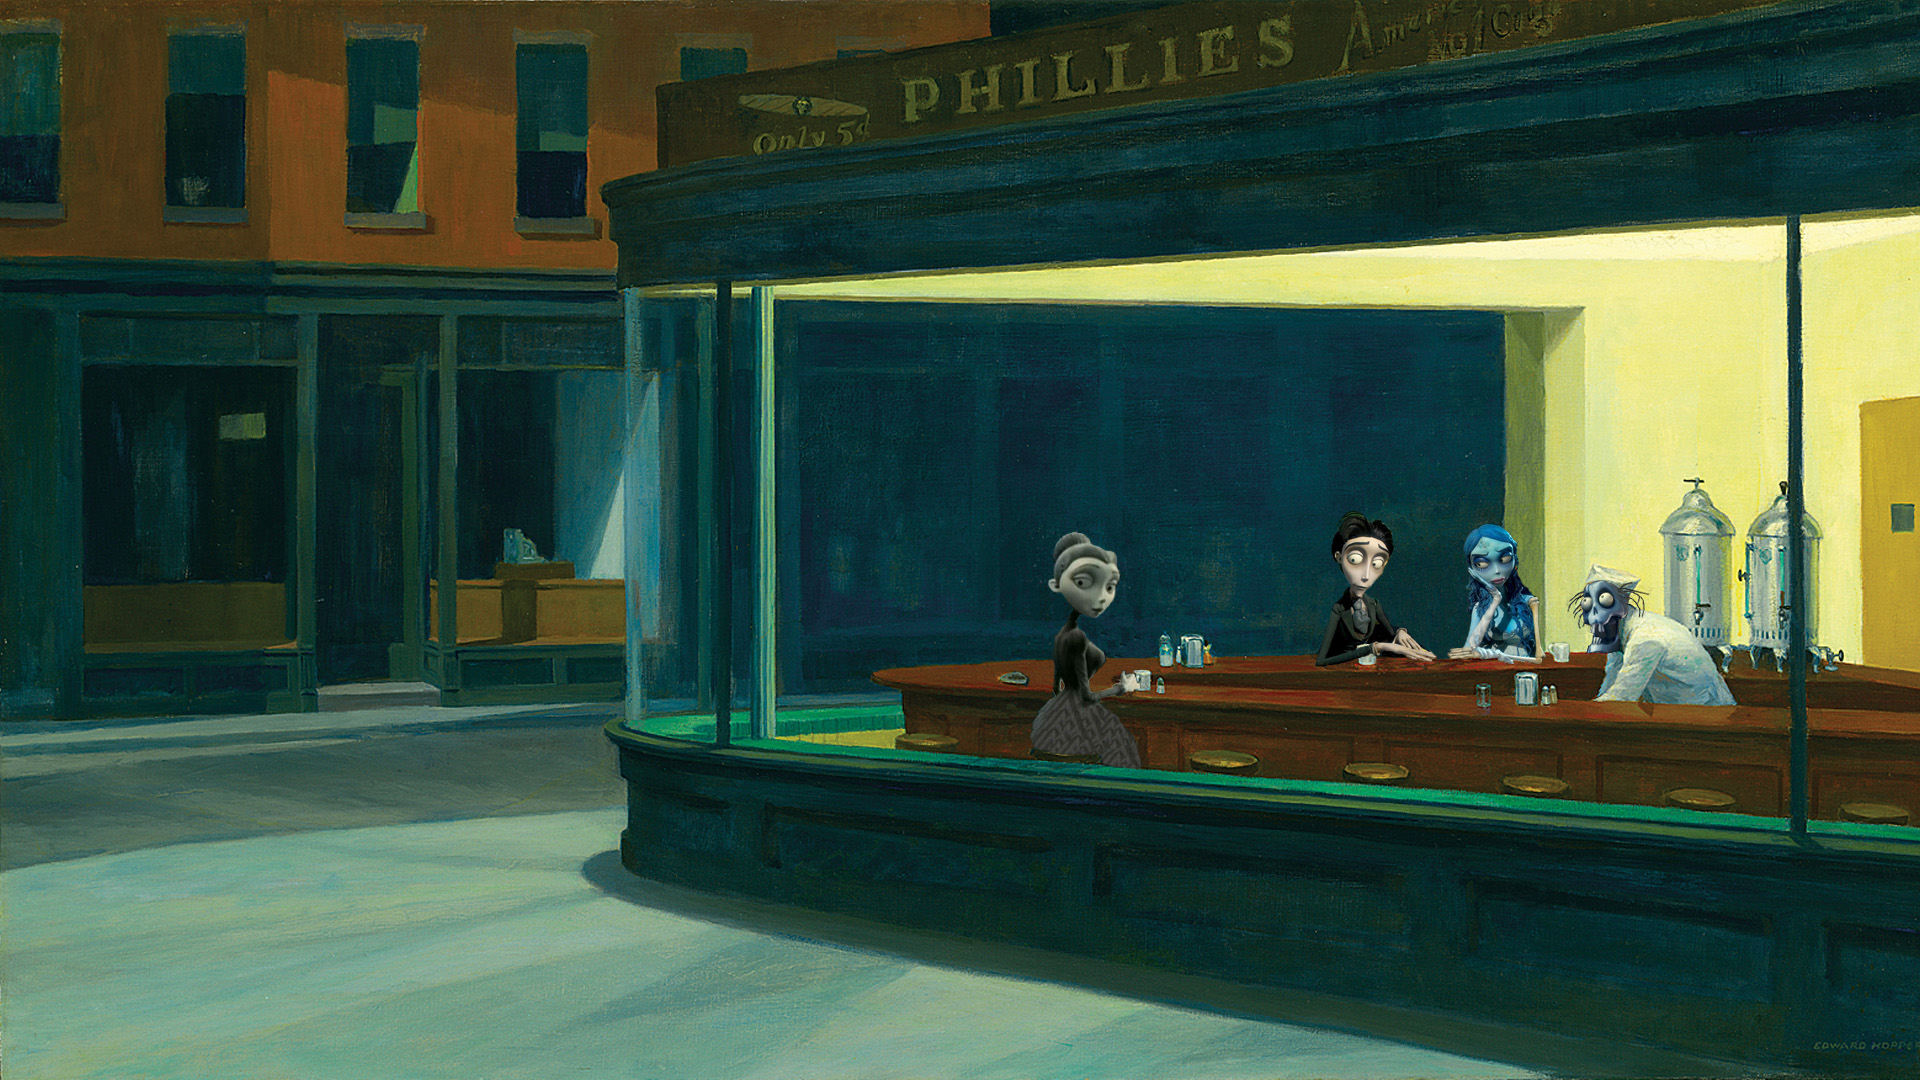 http://lounge.obviousmag.org/isso_compensa/2015/09/25/Nighthawks%20-%20terror.JPG